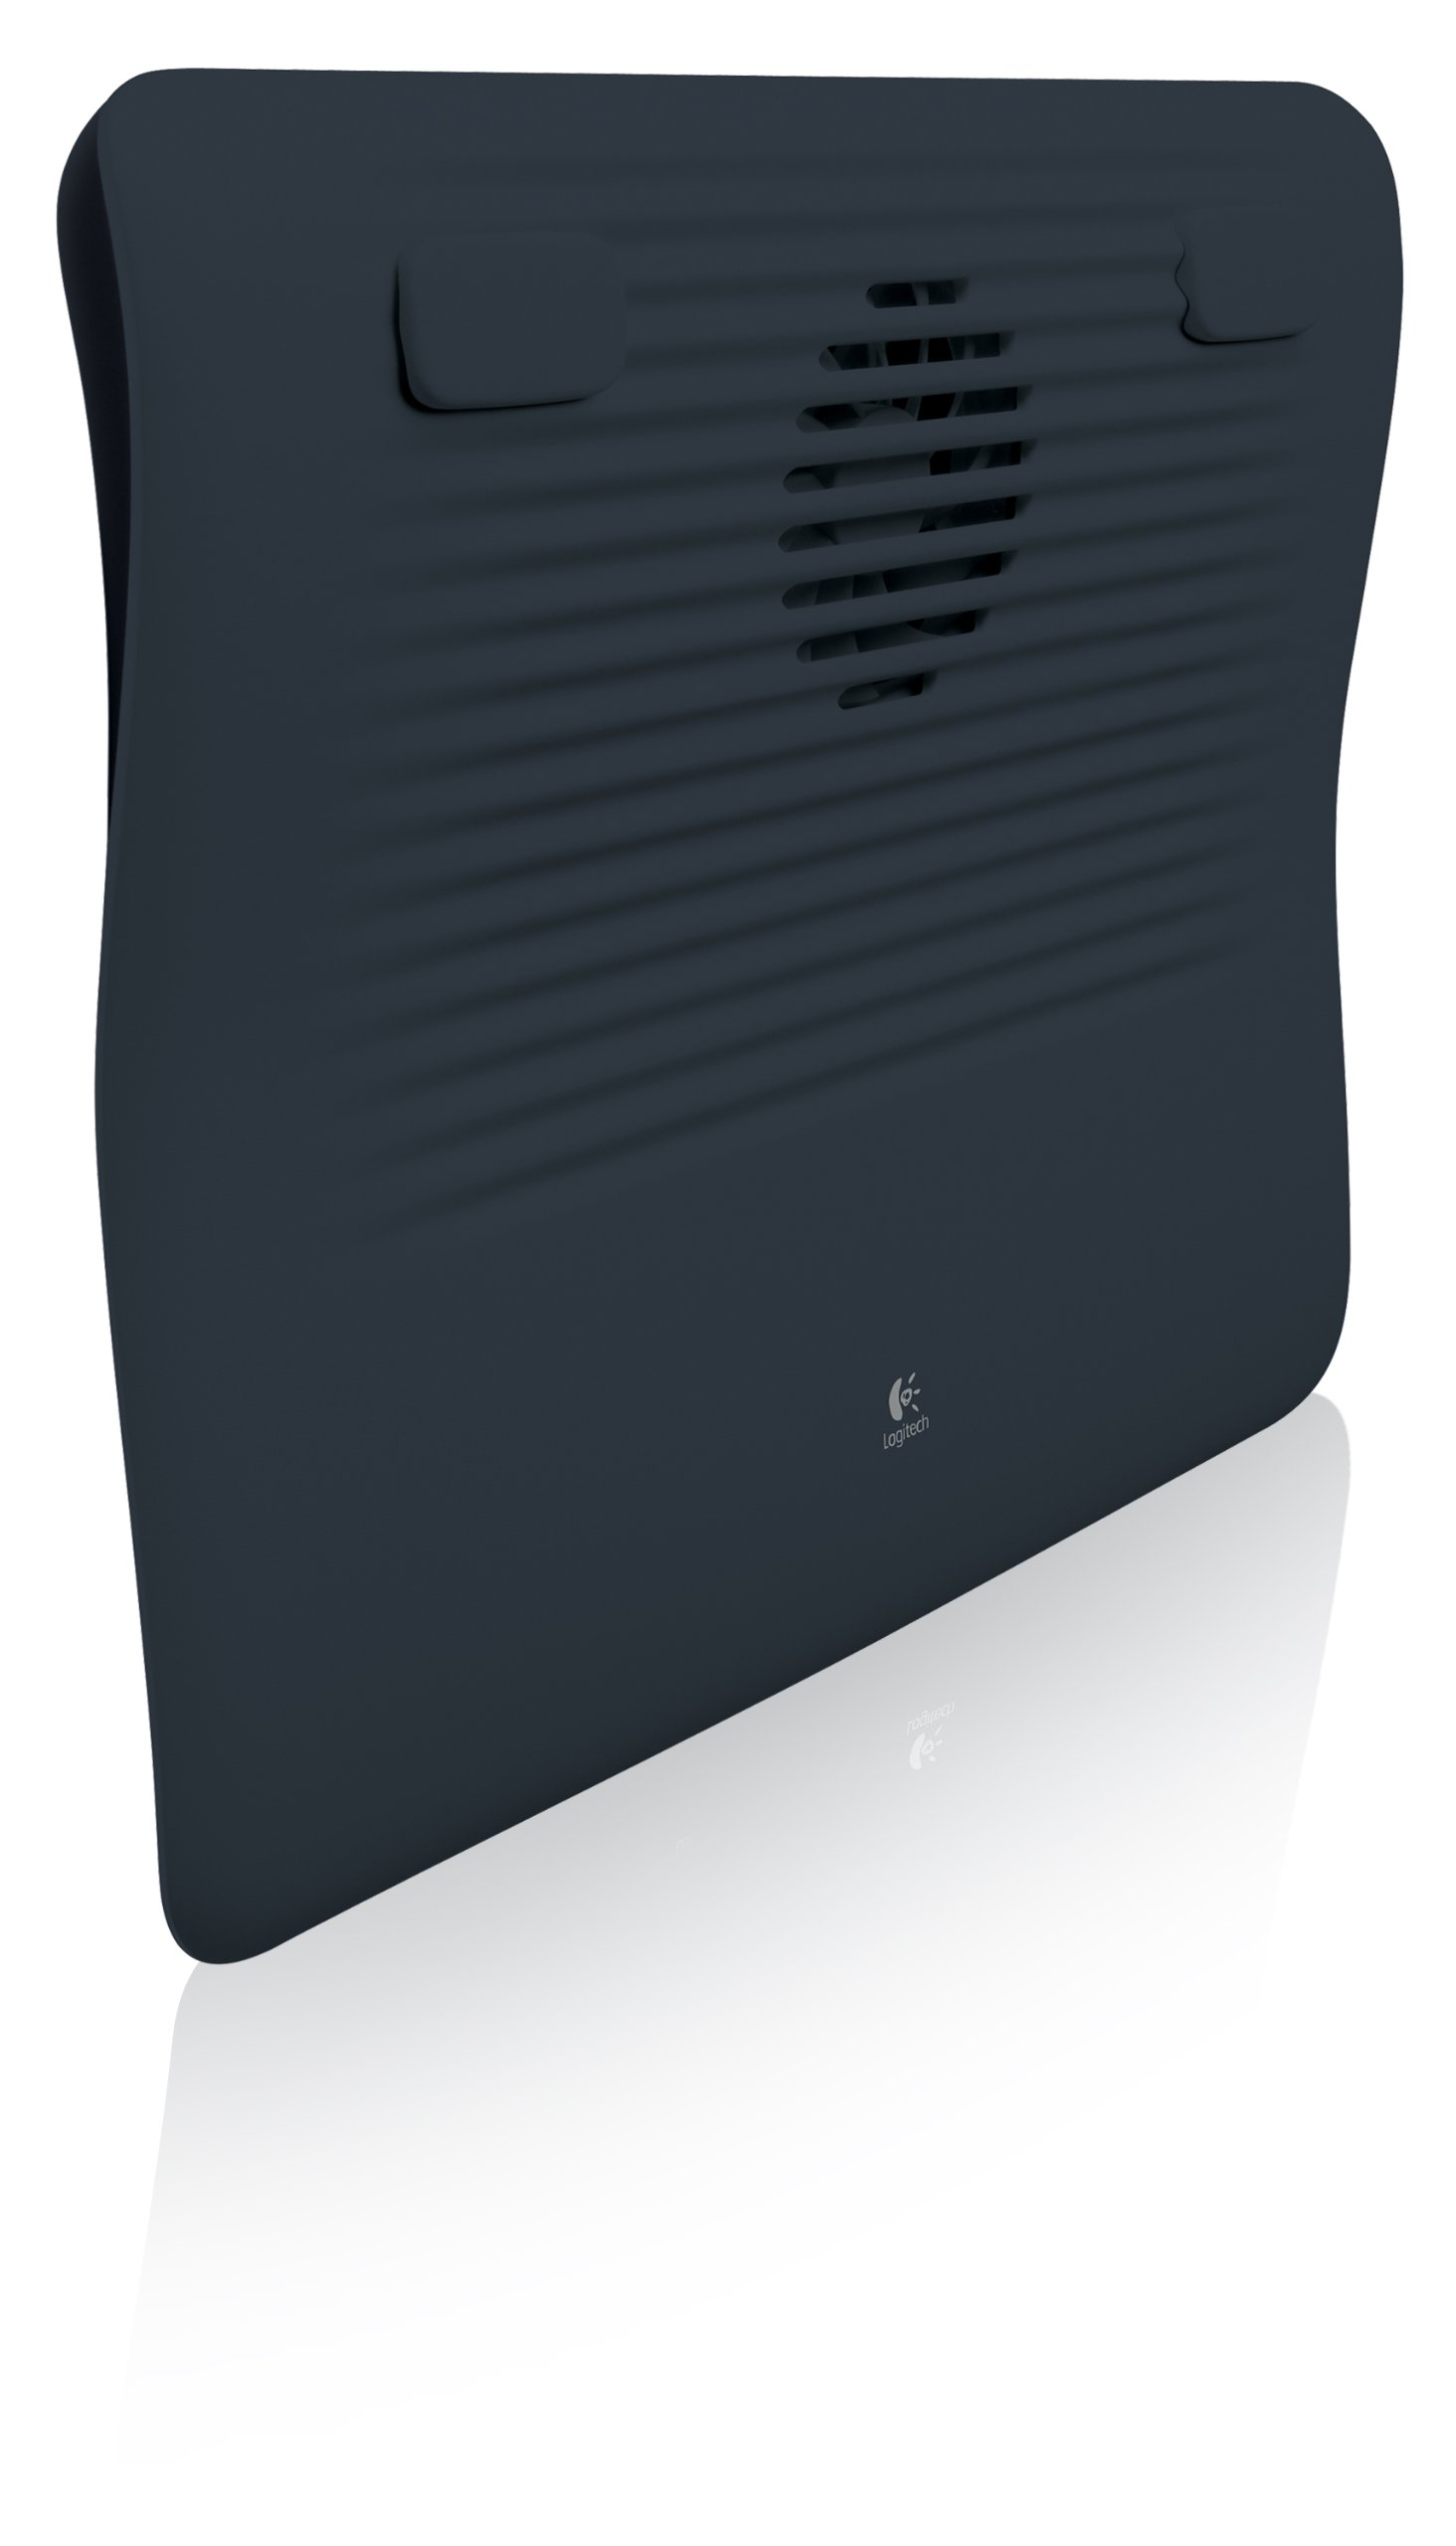 Logitech USB-Powered Cooling Pad N120 with Silent-Airflow Fan and Low Power Consumption